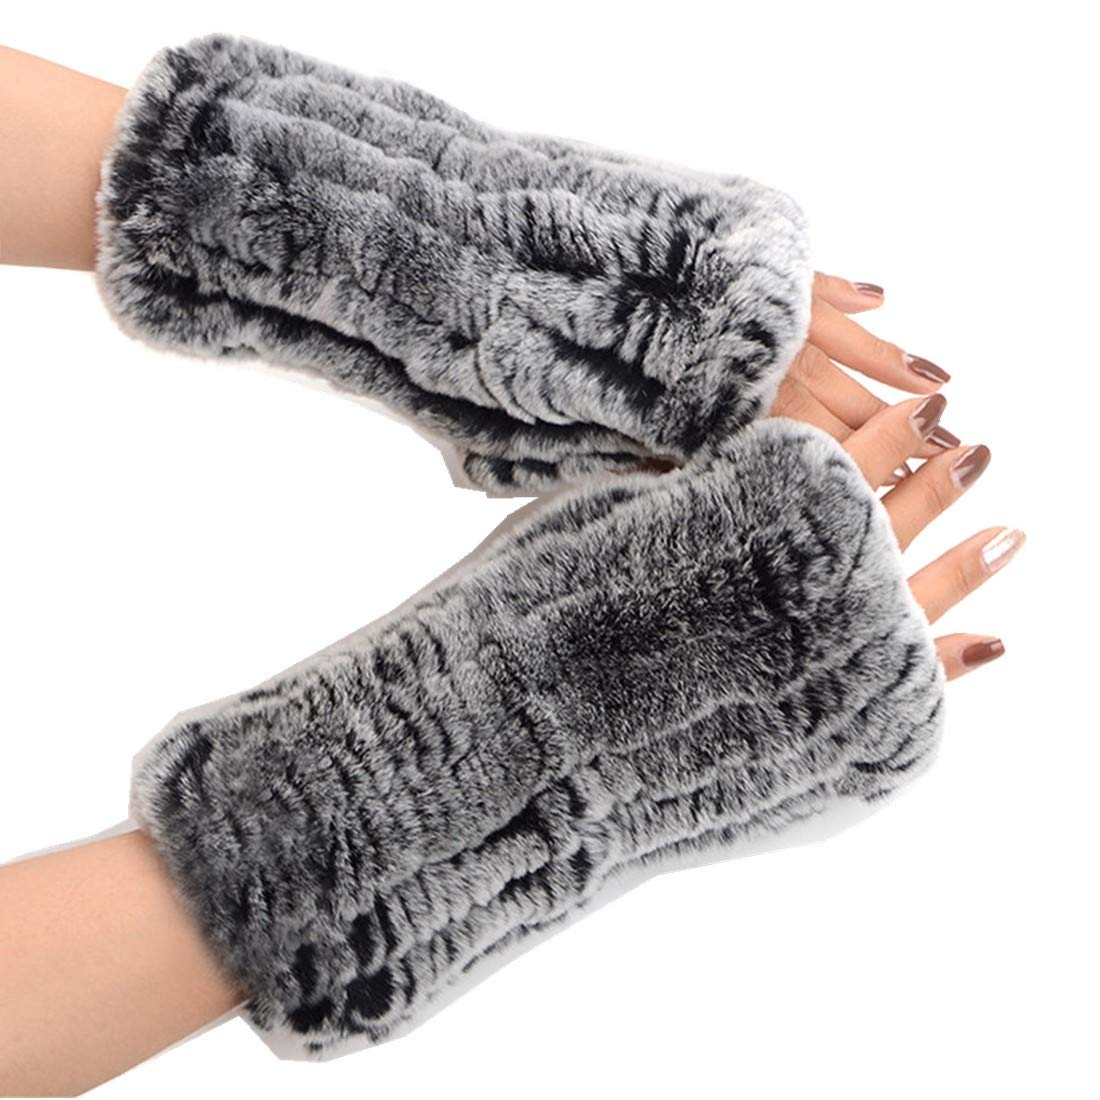 Winter Fake Fur Furry Fingerless Gloves for Women, Lengthened,Thicken,7 Colors(Grey)